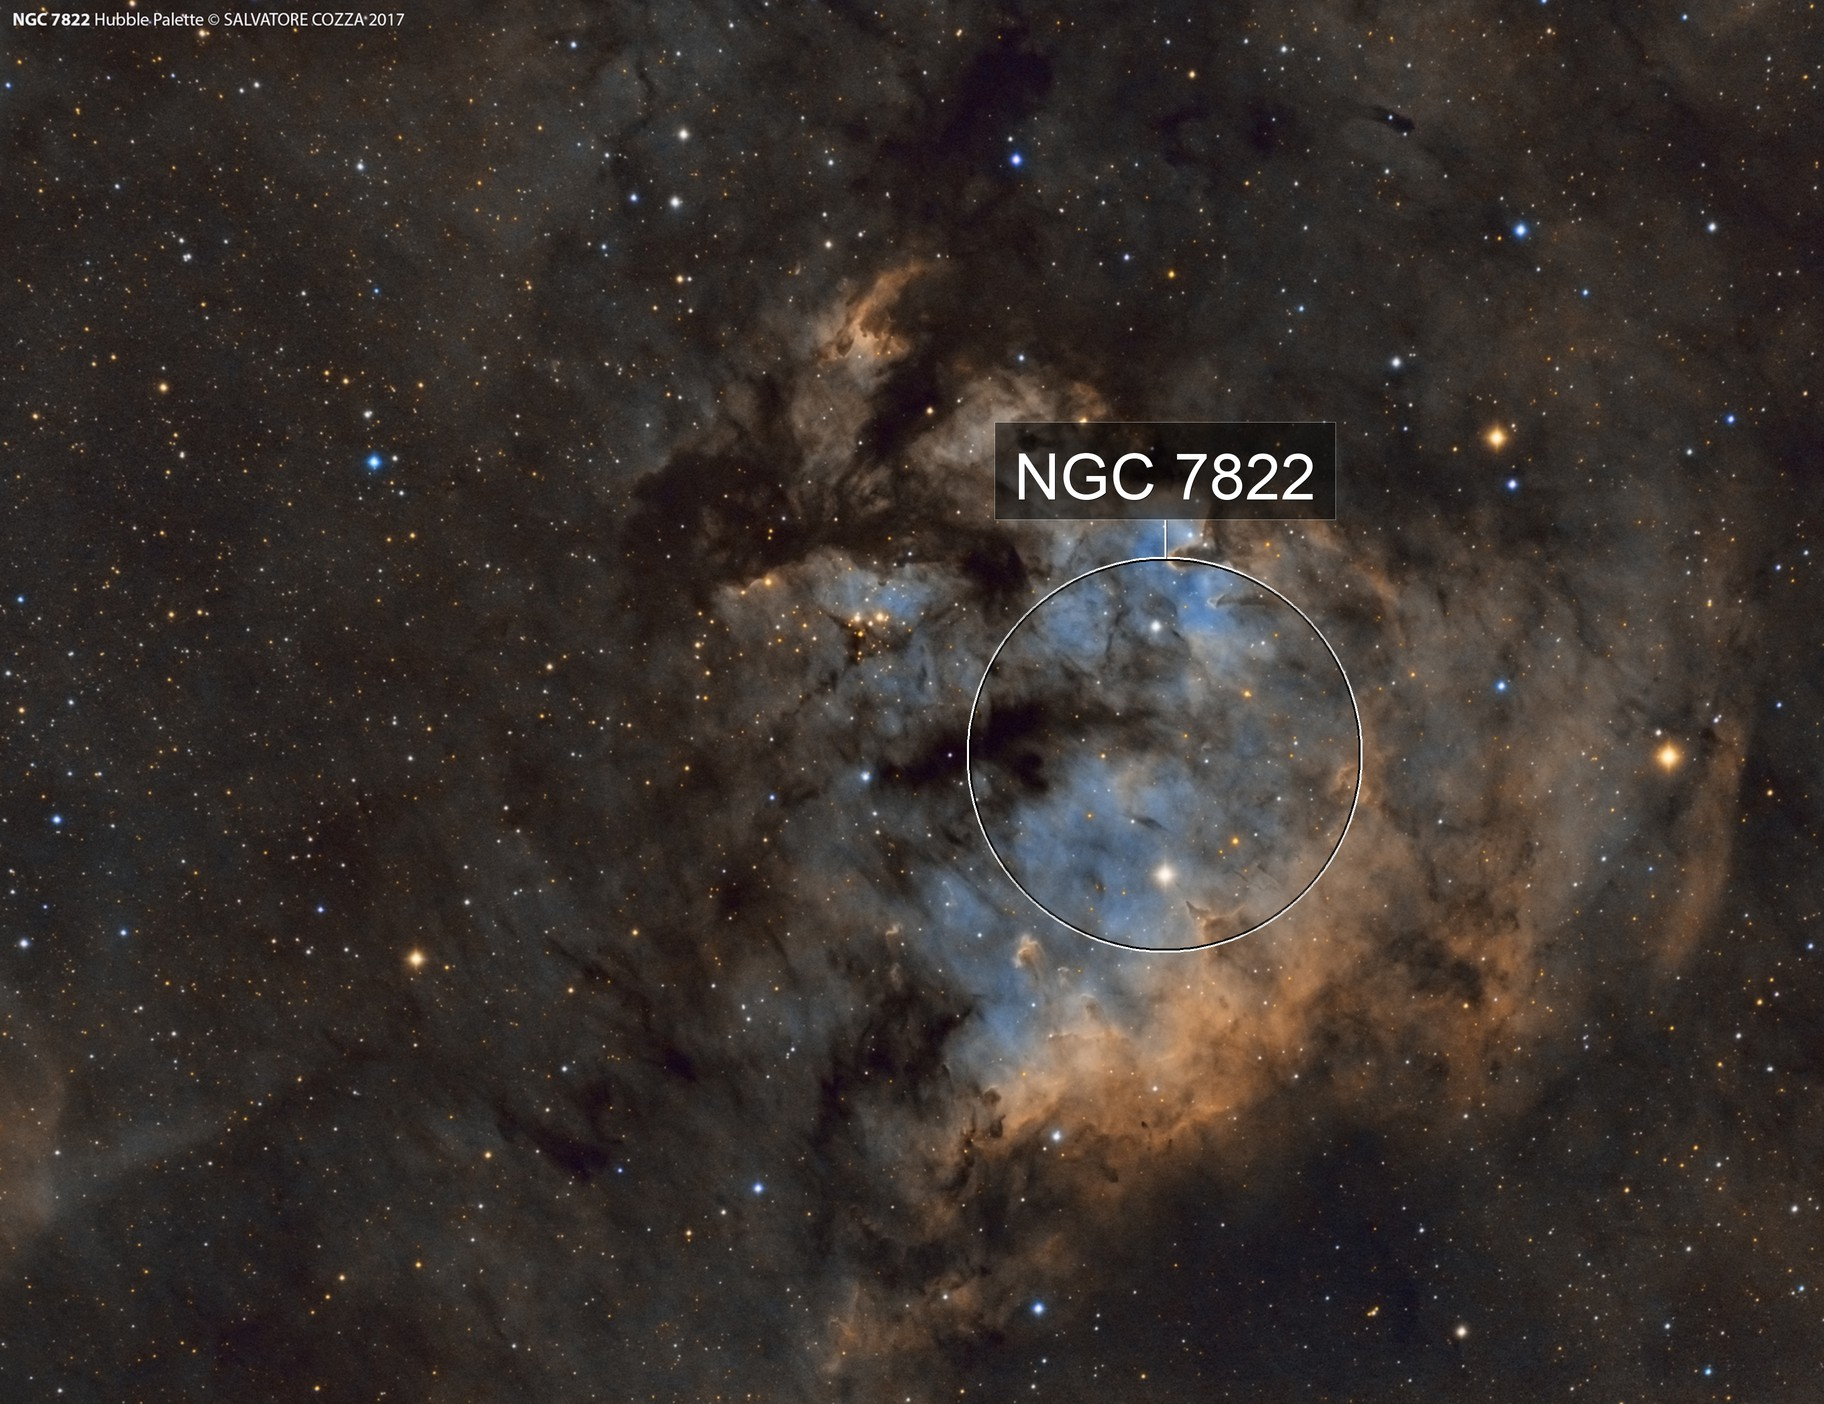 NGC 7822 in Hubble Palette